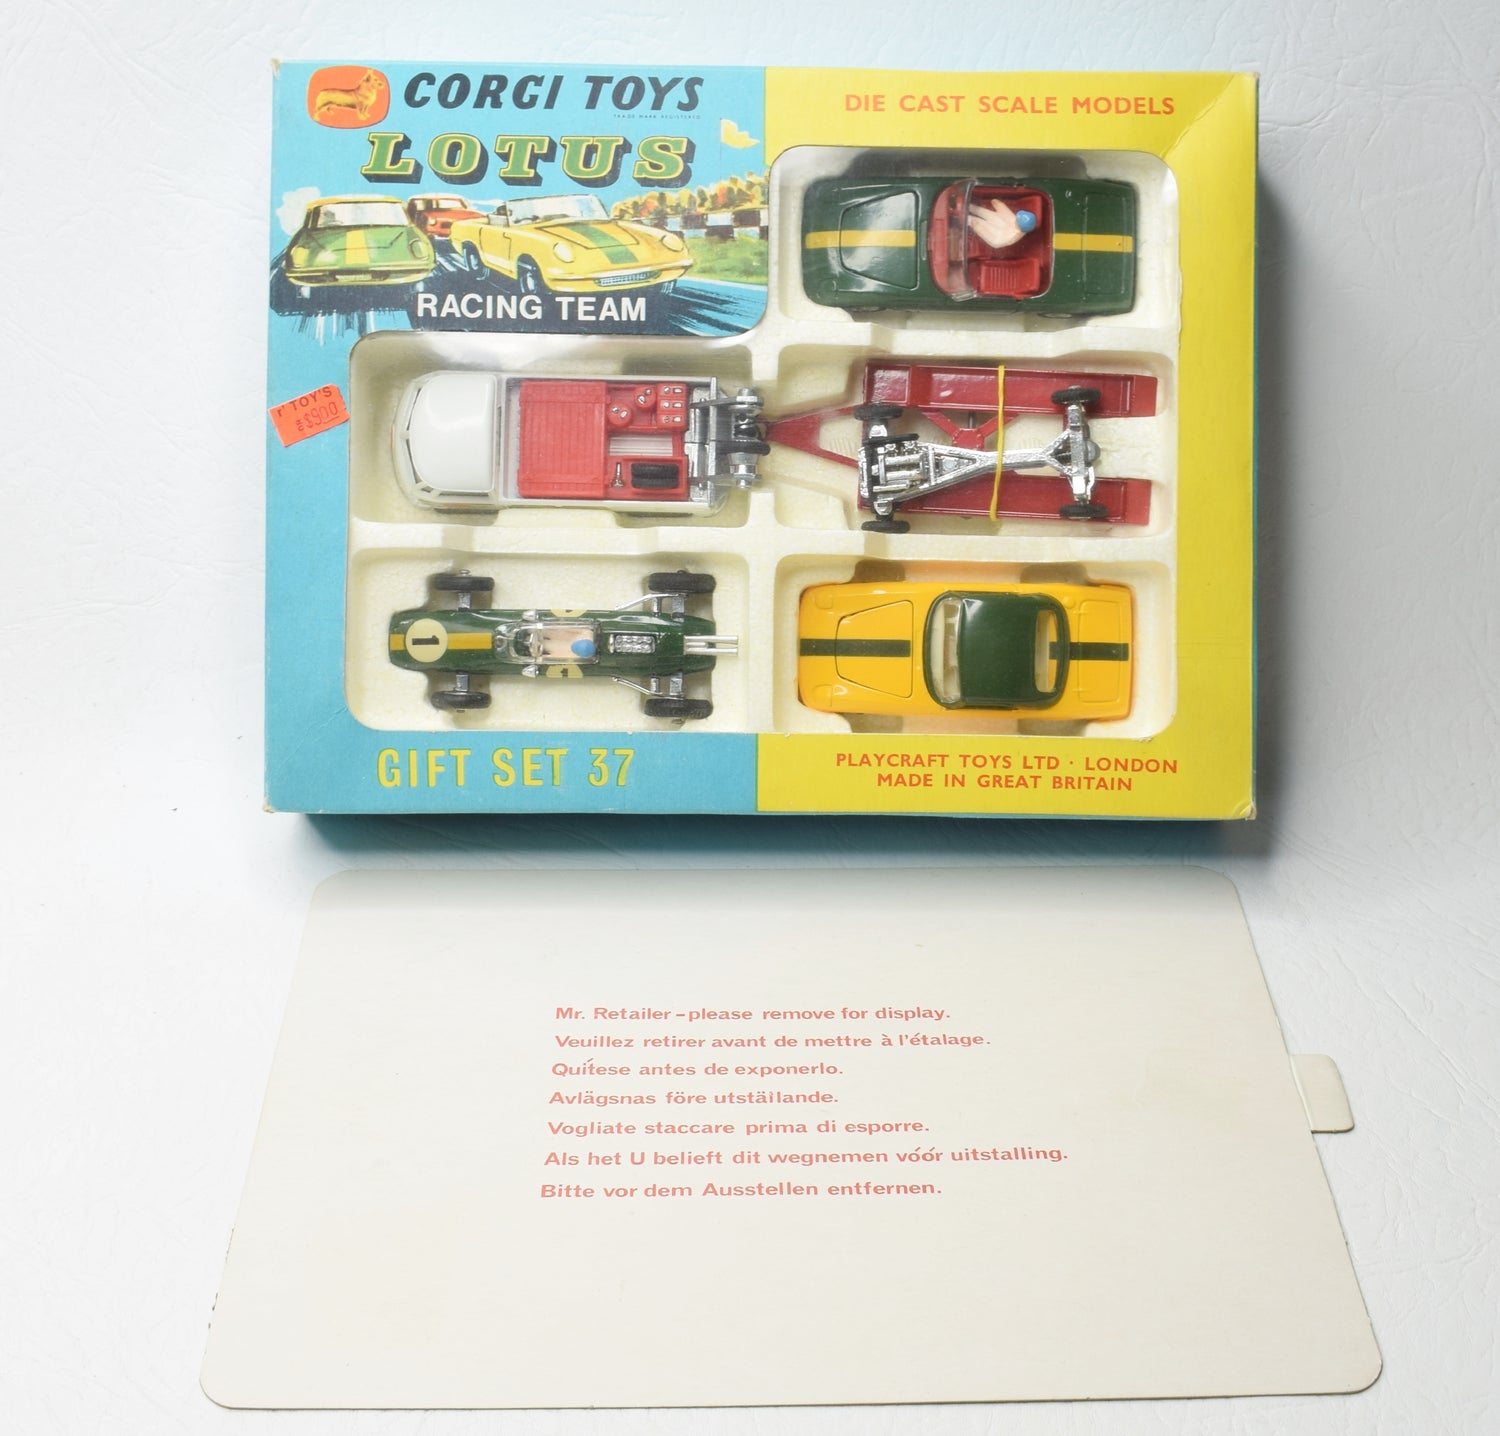 Corgi toys Gift set 37 Lotus Racing Team Virtually Mint/Boxed (New 'The Lane' Collection)